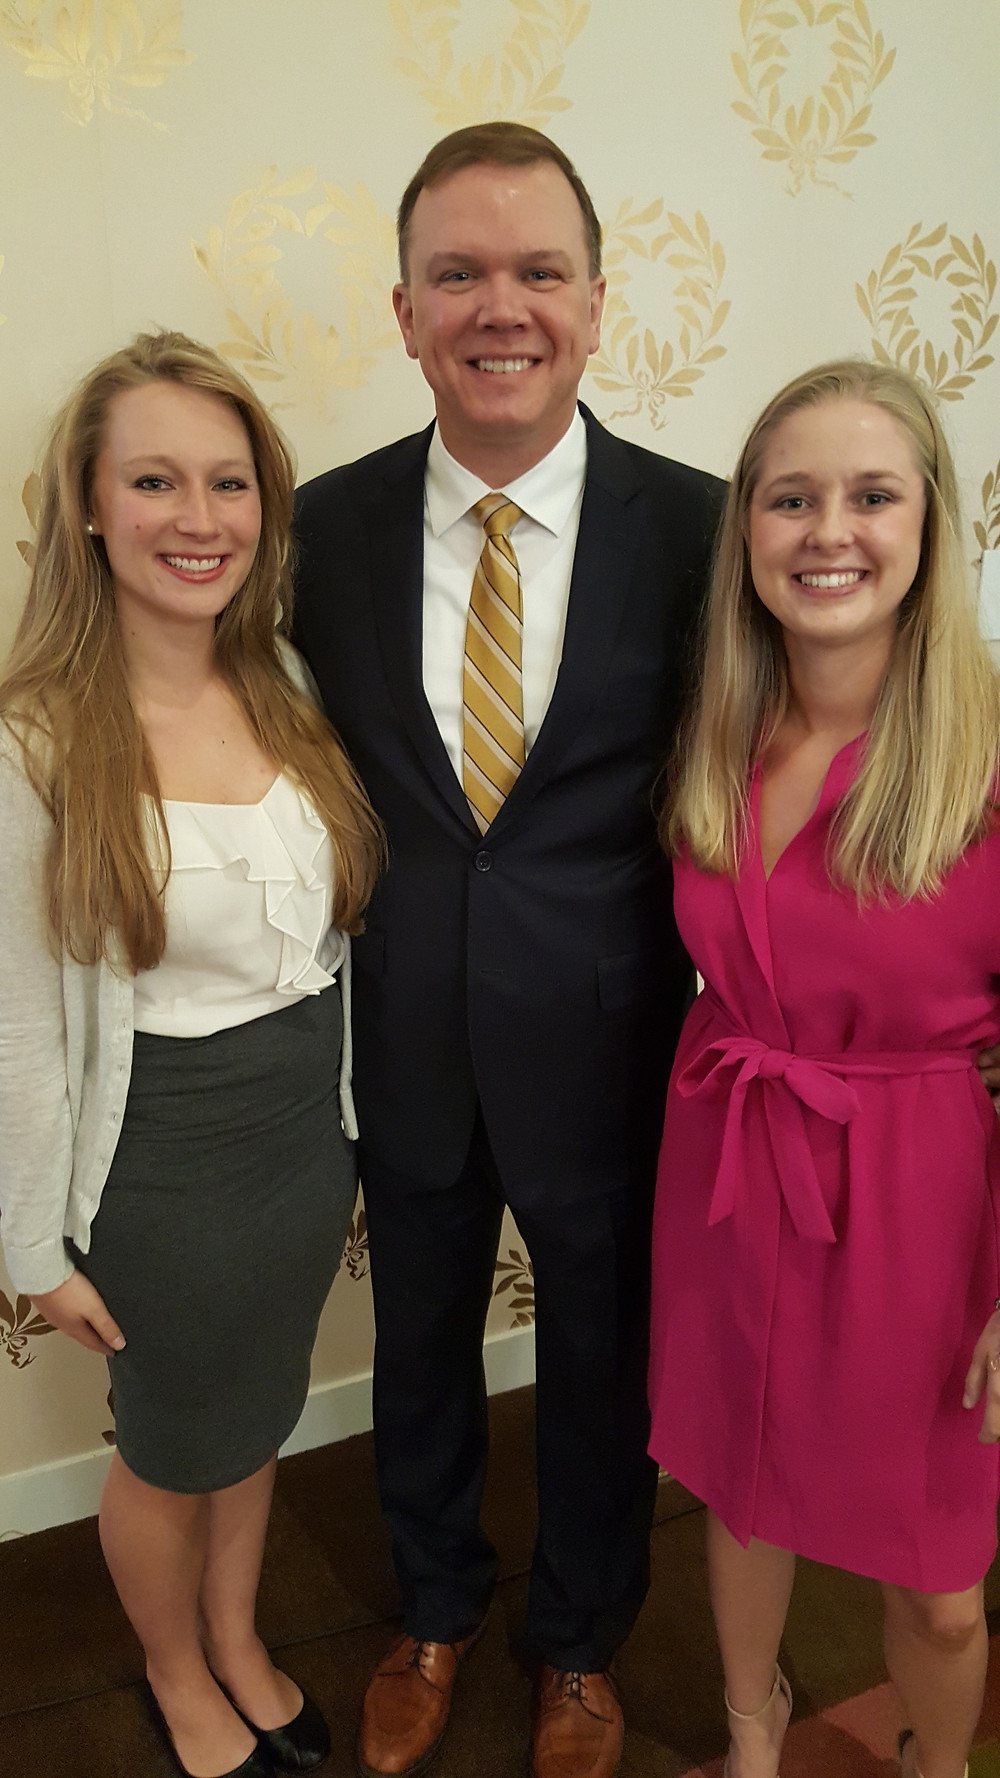 L to R: Leigh Ann Clark, Aaron Ostrowski and Chelsea Hyre (Cord)